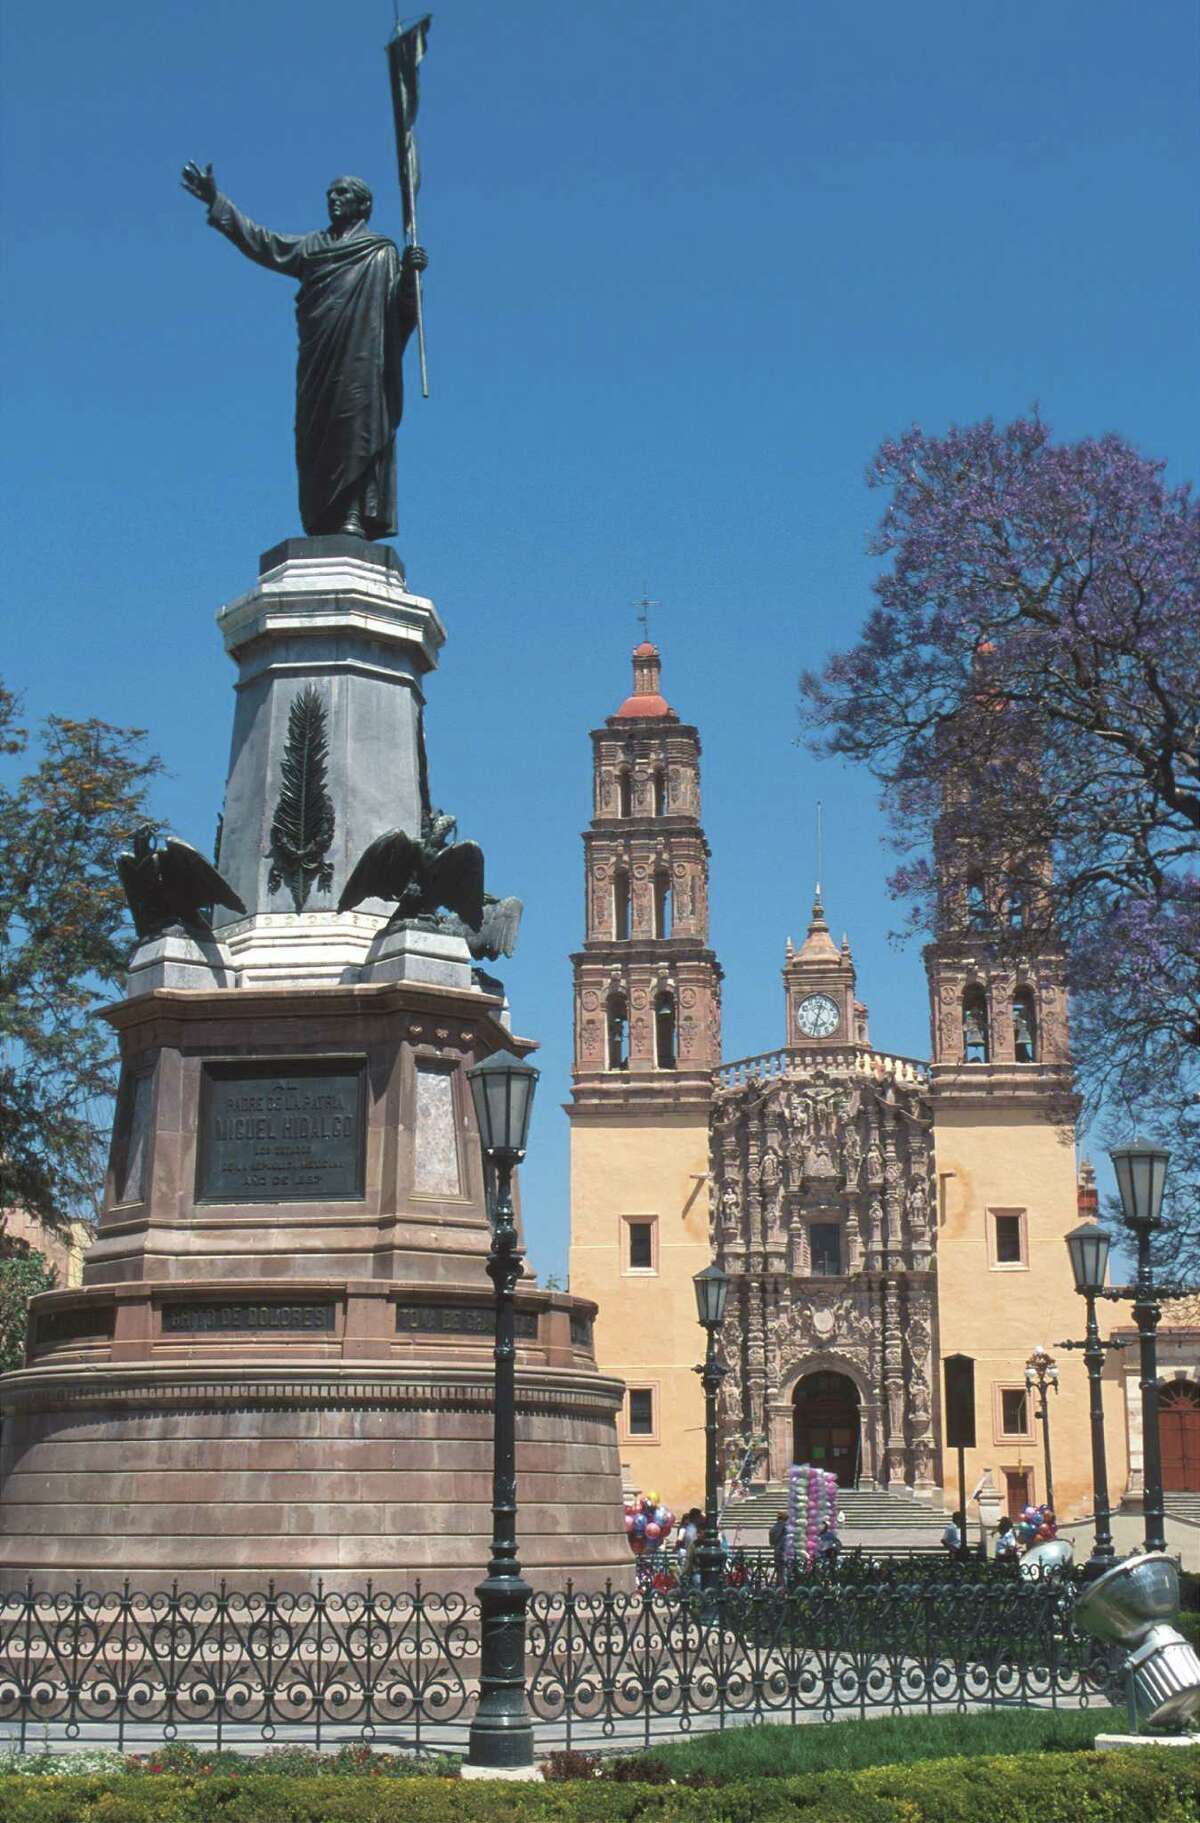 The event On the morning of September 16, Father Miguel Hidalgo y Costilla rang a church bell to rally his congregation against their Spanish-led government.